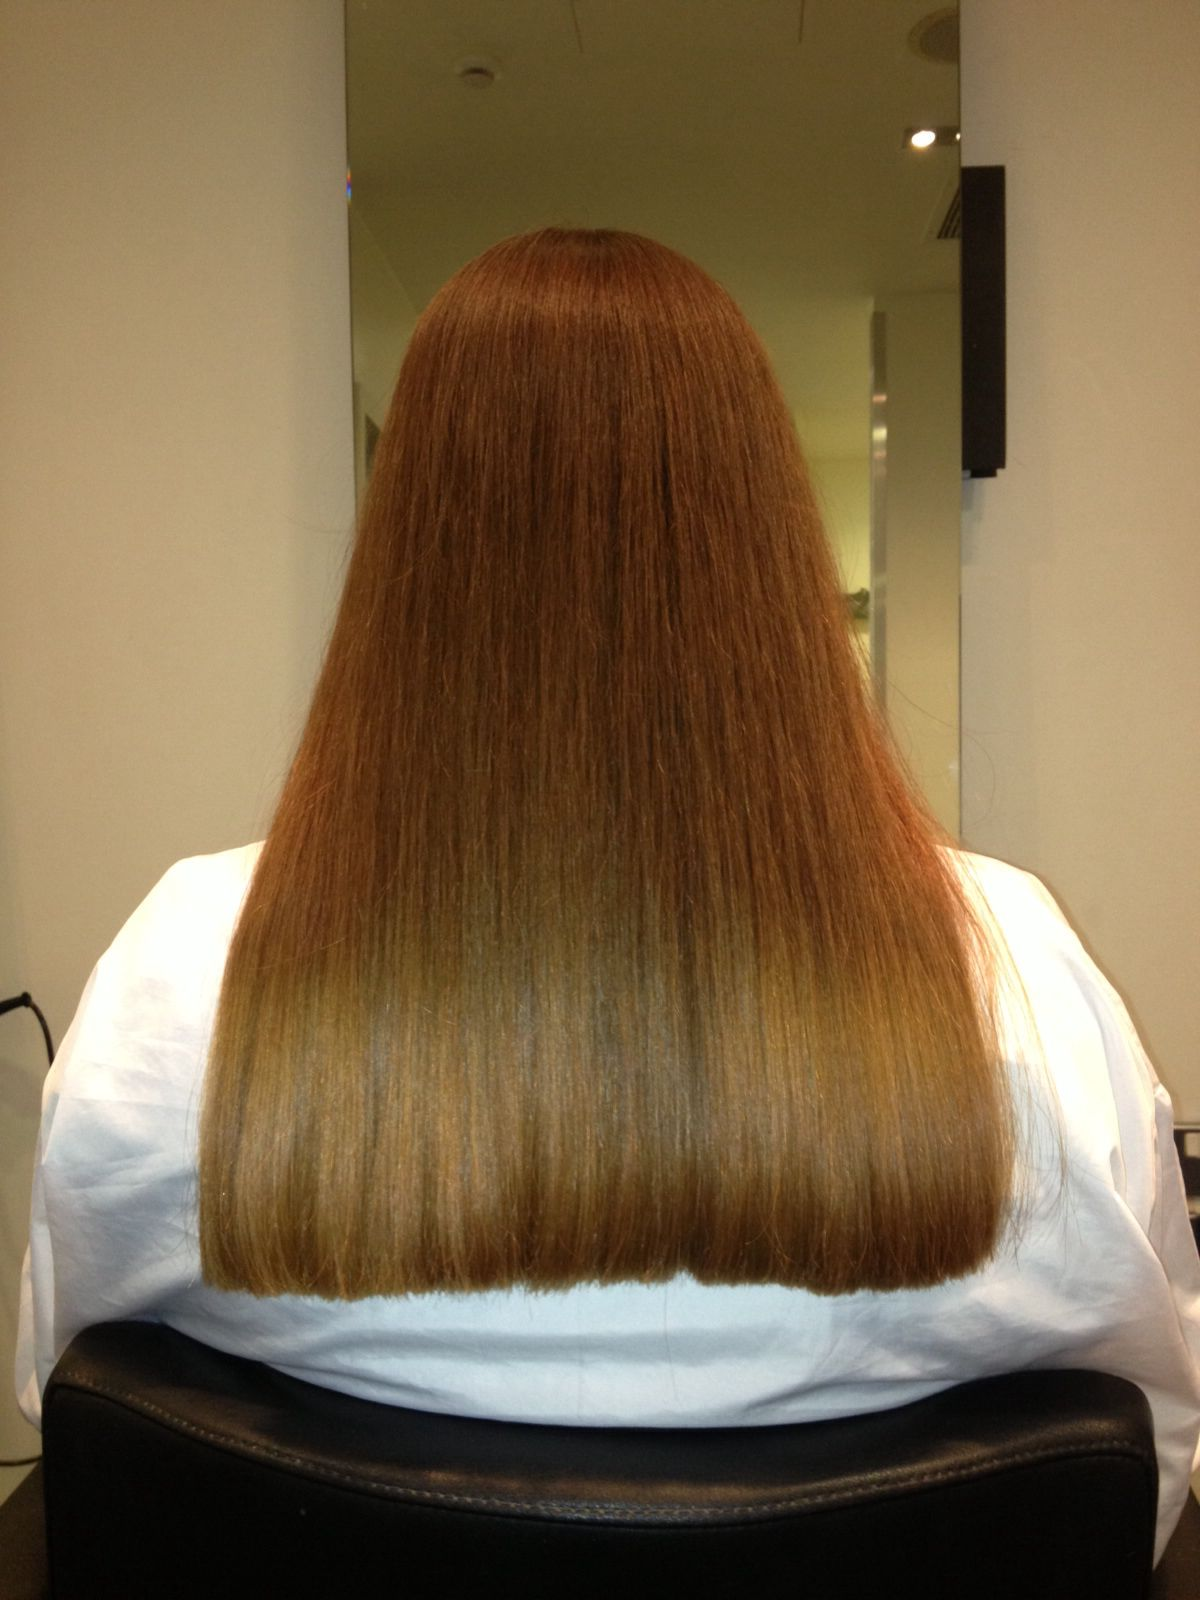 Square Perimeter On A One Length Hair Cut One Length Square In